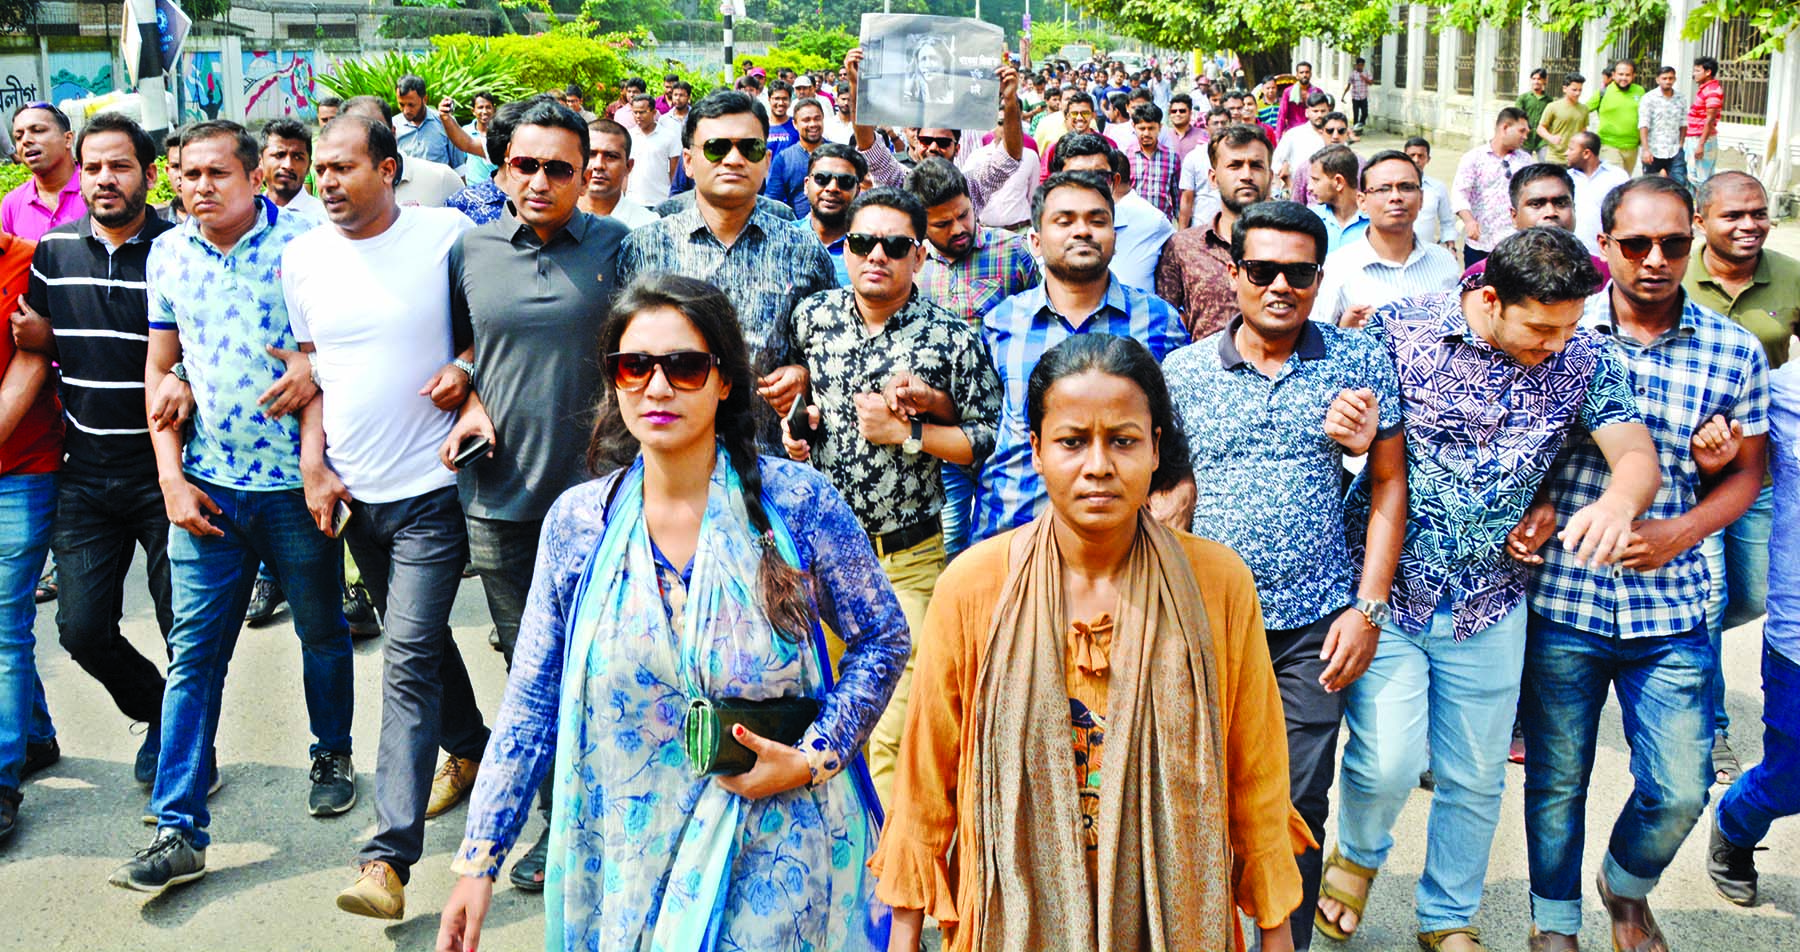 Jatiyatabadi Chhatra Dal brought out a procession in Dhaka University area on Tuesday demanding release of BNP Chief Begum Khaleda Zia.